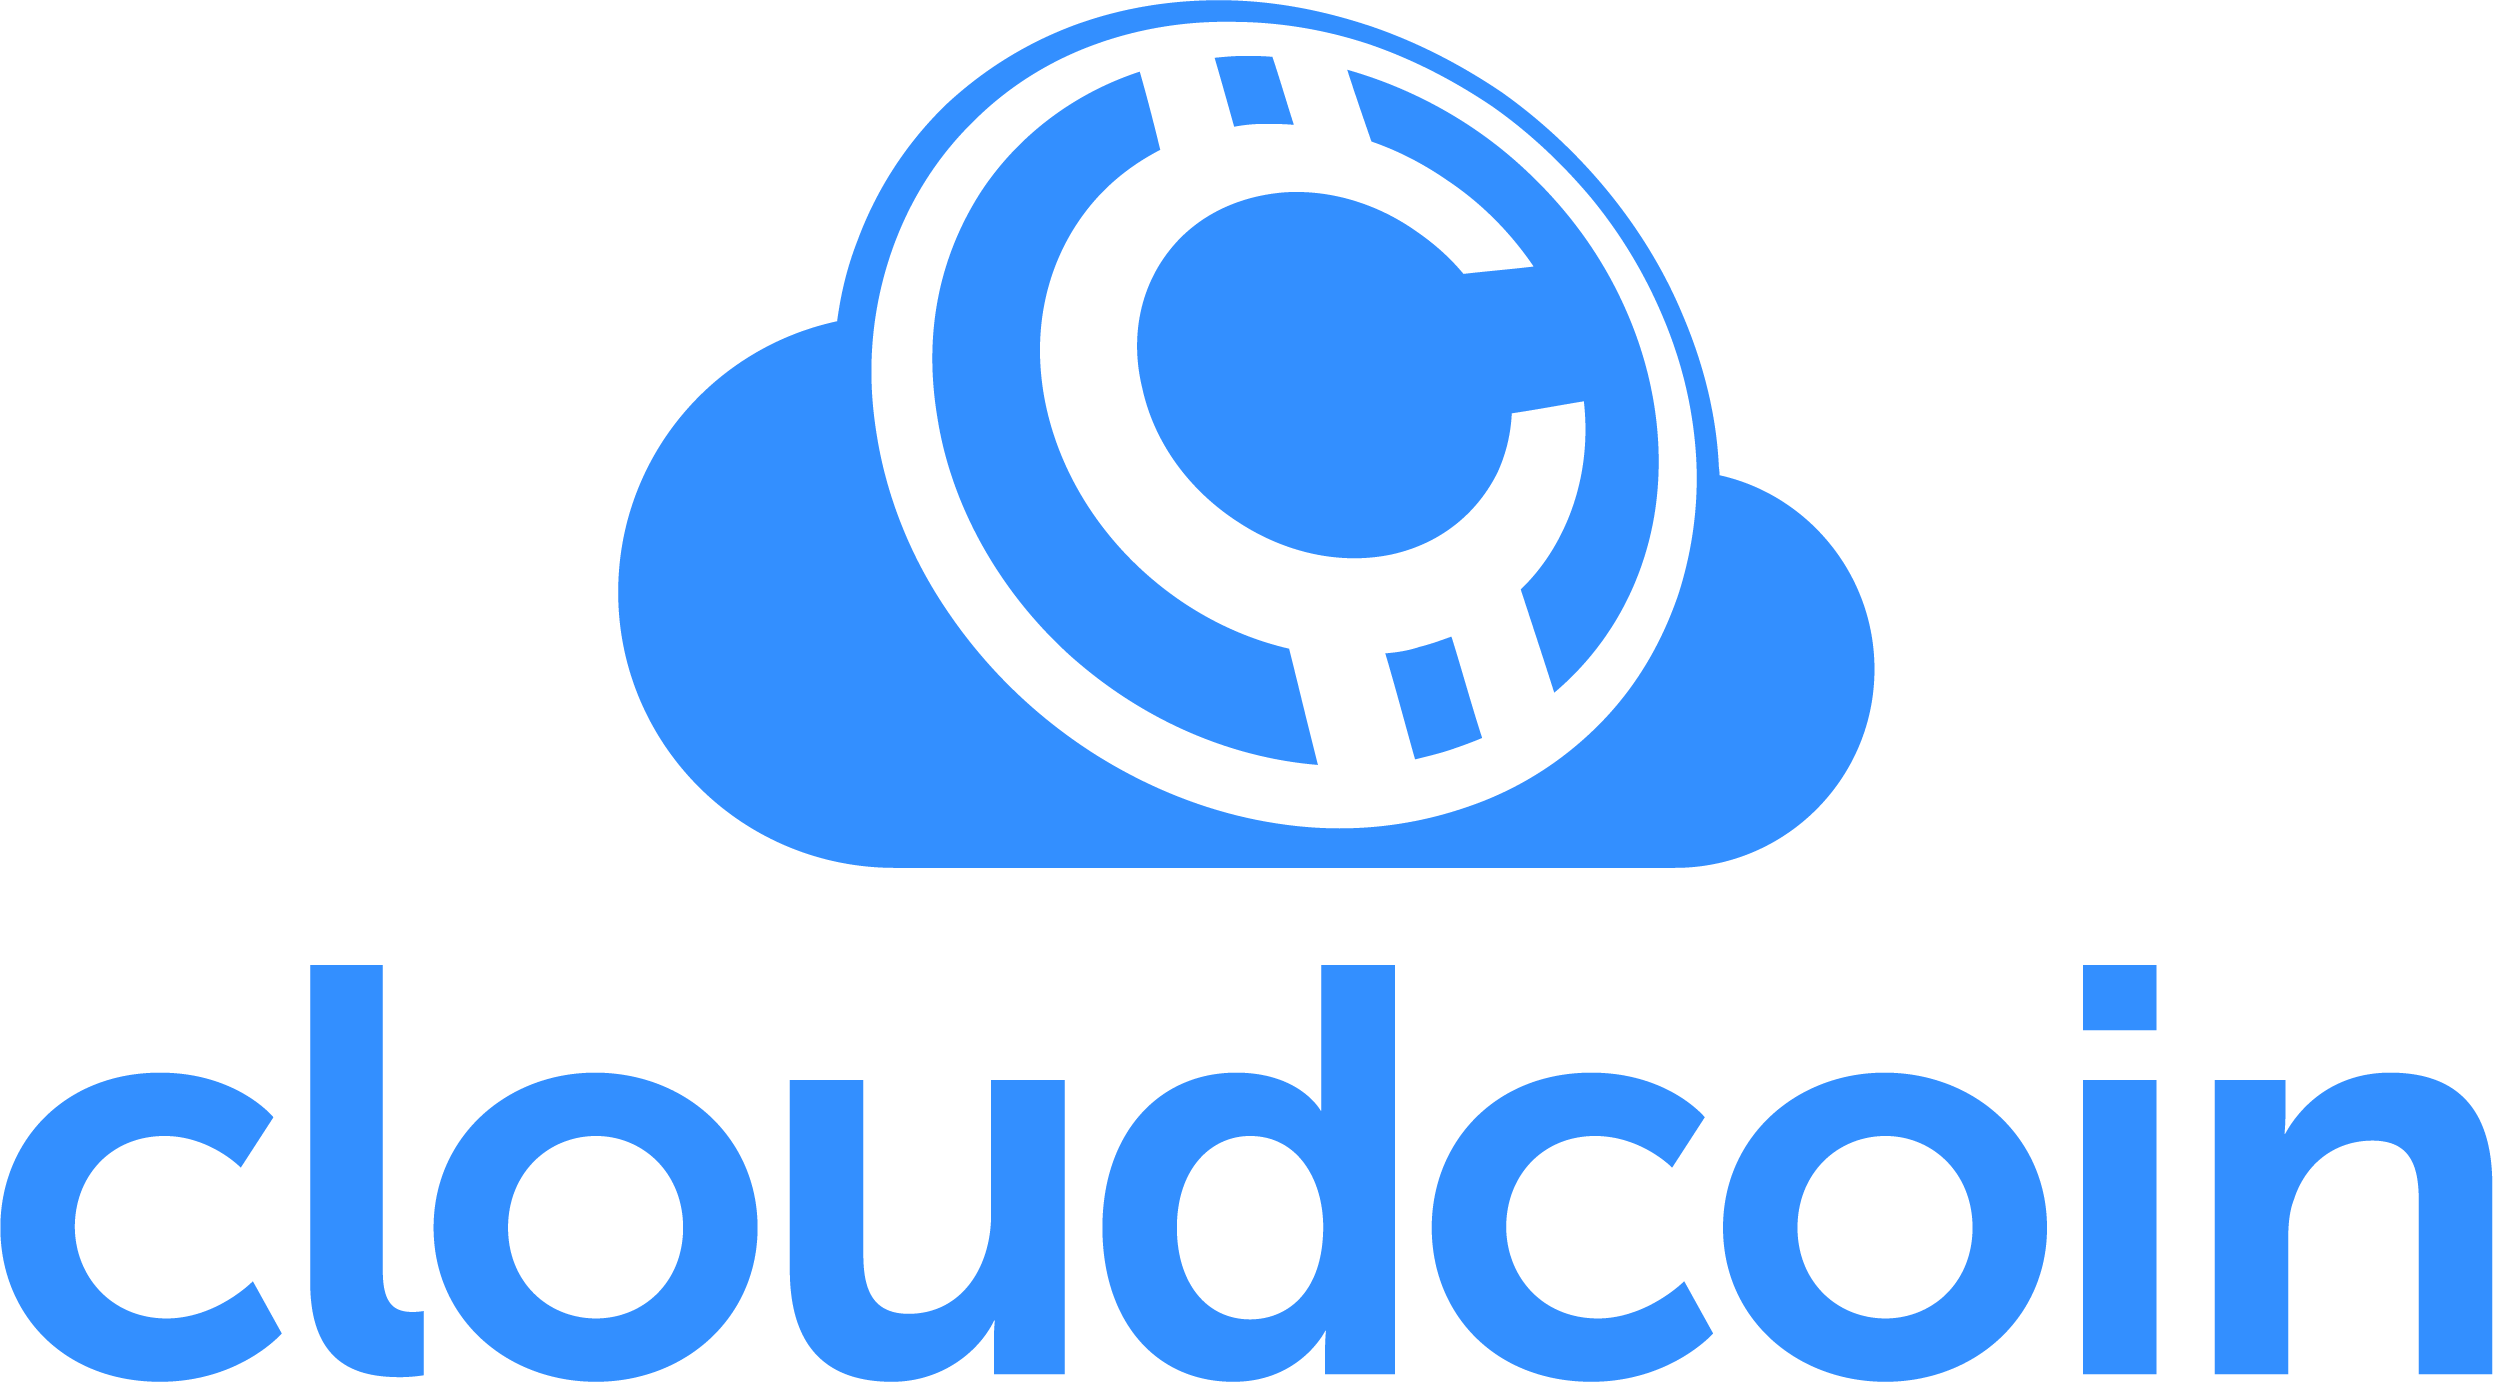 """The goal of CloudCoin is to provide a """"perfect"""" global currency that cannot be counterfeited, double-spent, mined or lost; An eCurrency that is 100% private, requires no public ledgers, accounts, or even encryption; a monetary system that is absolutely fair and ethical and requires no special software or downloads.  Receive 5 Free Cloudcoin by clicking the above logo."""